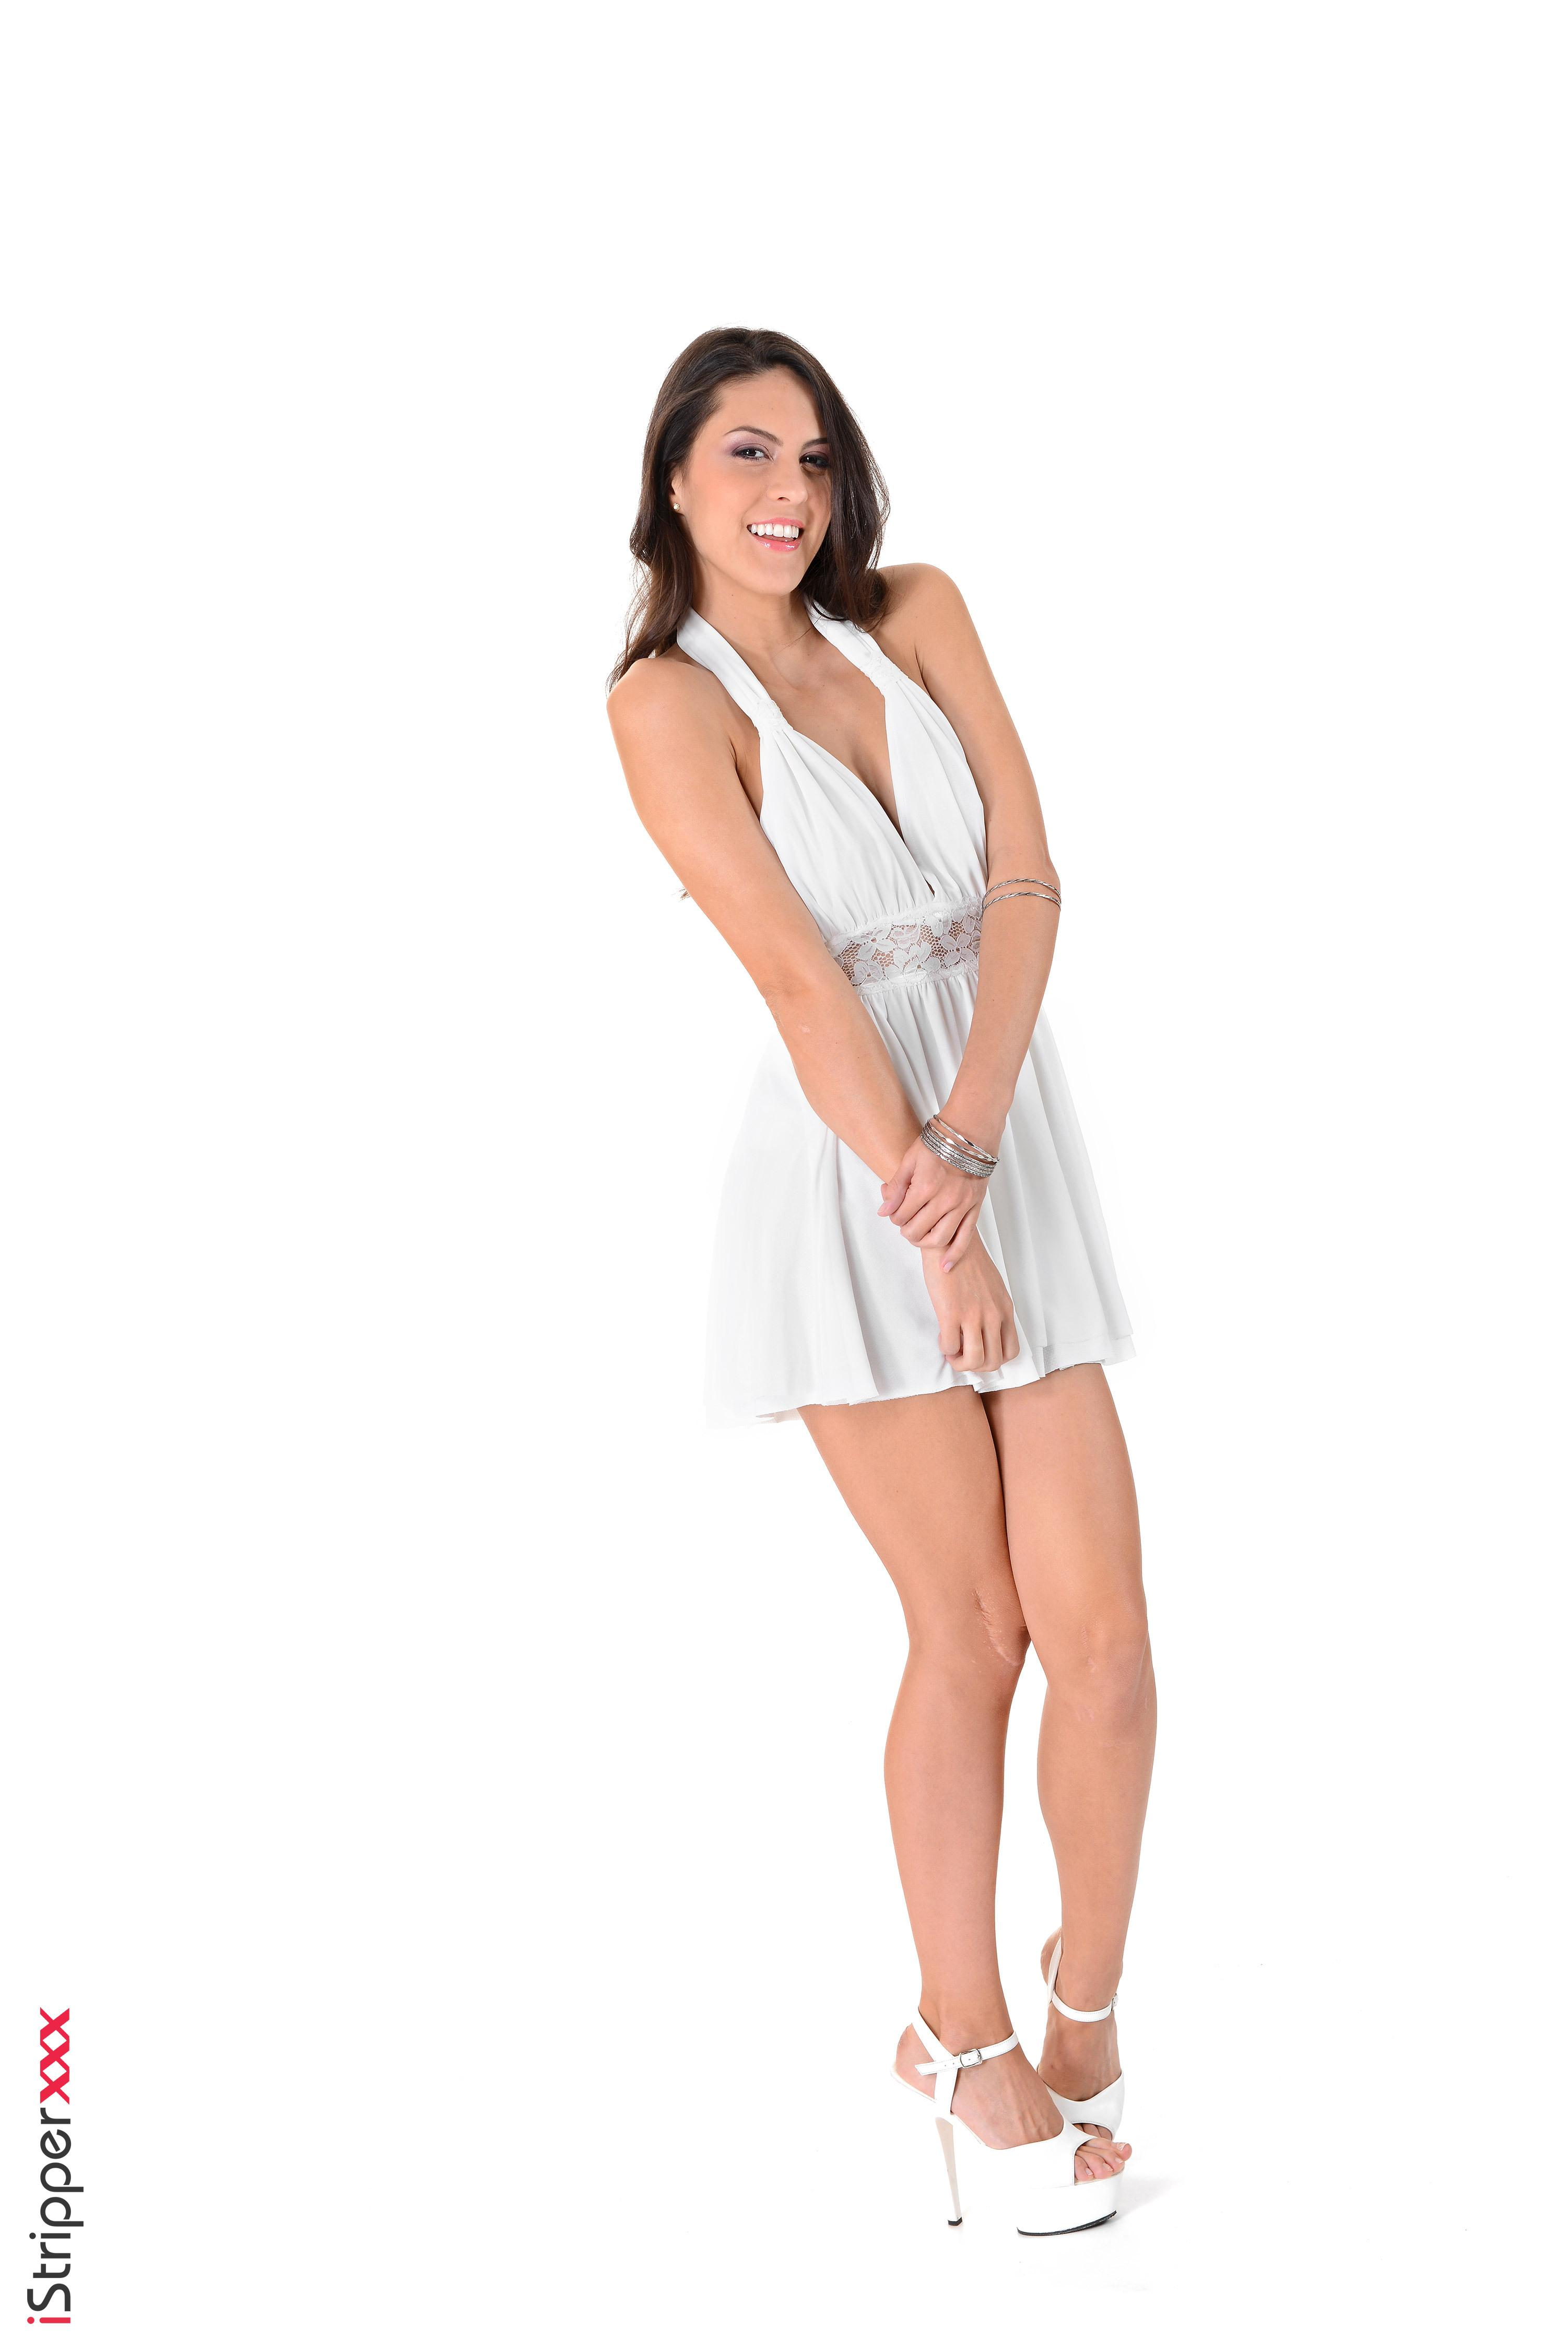 Stunner Carolina Abril takes off her milky sundress and undies before fingering her cootchie